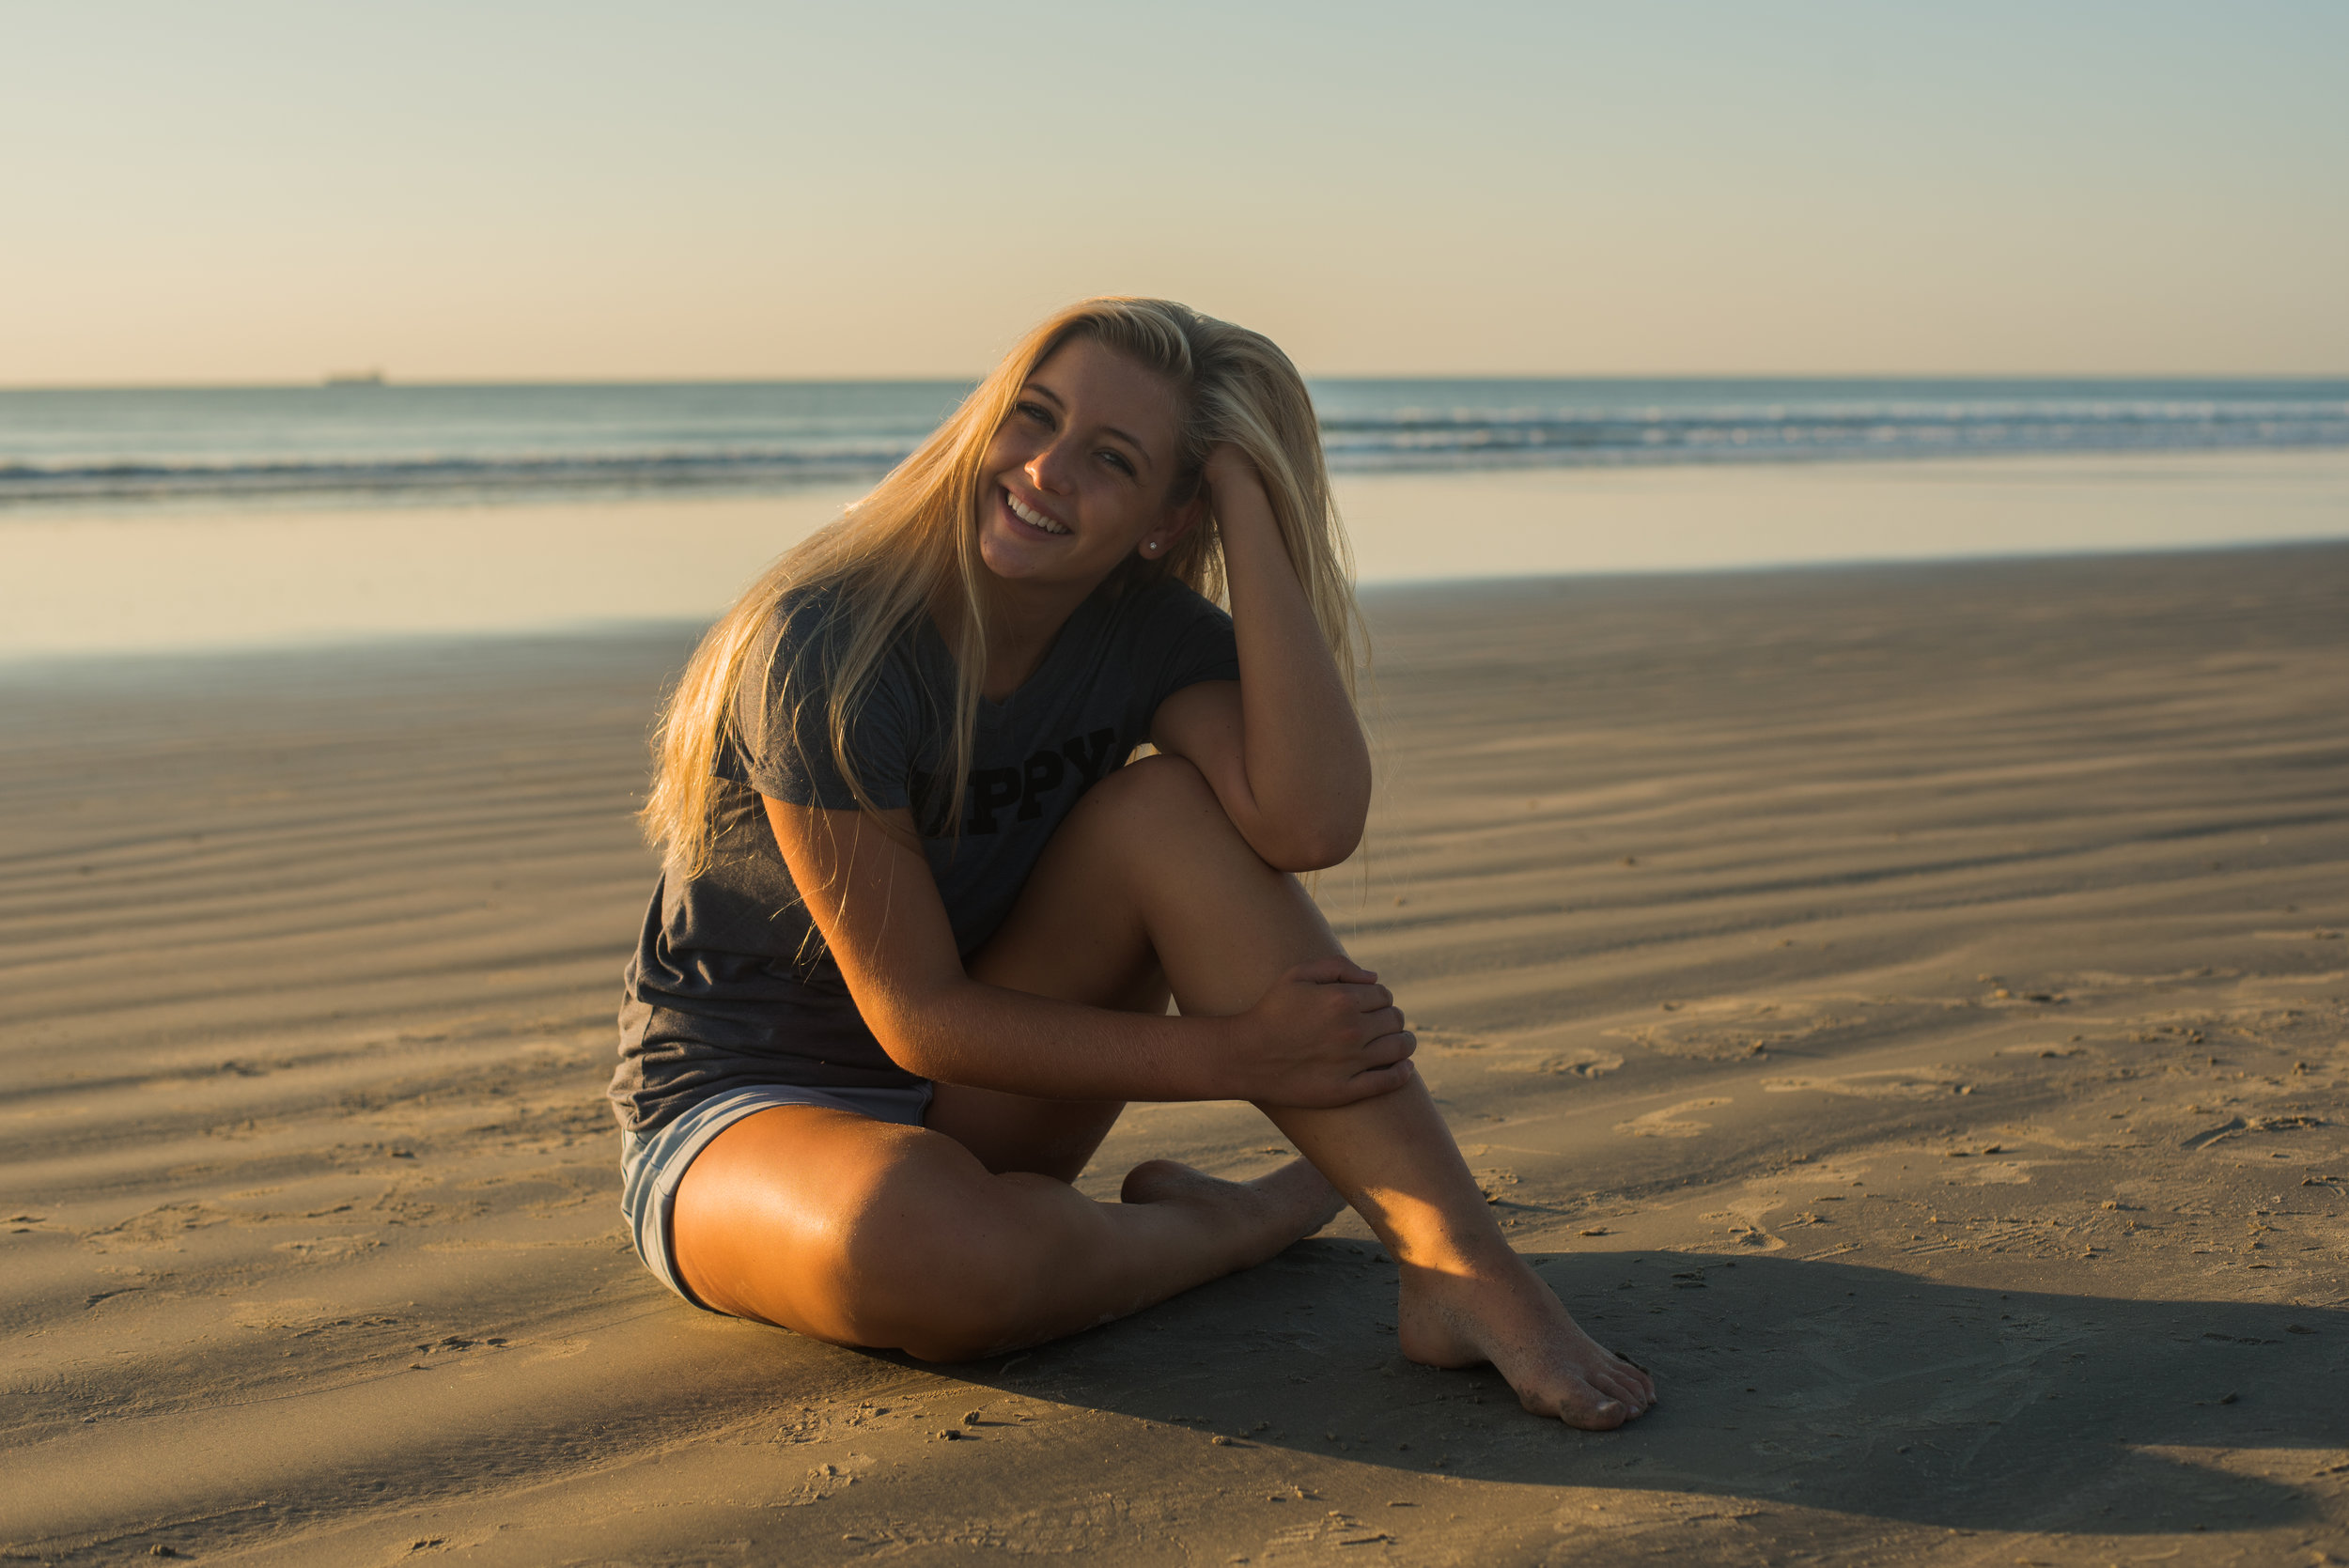 maddie-cocoa-beach-senior-photo-1-37.jpg